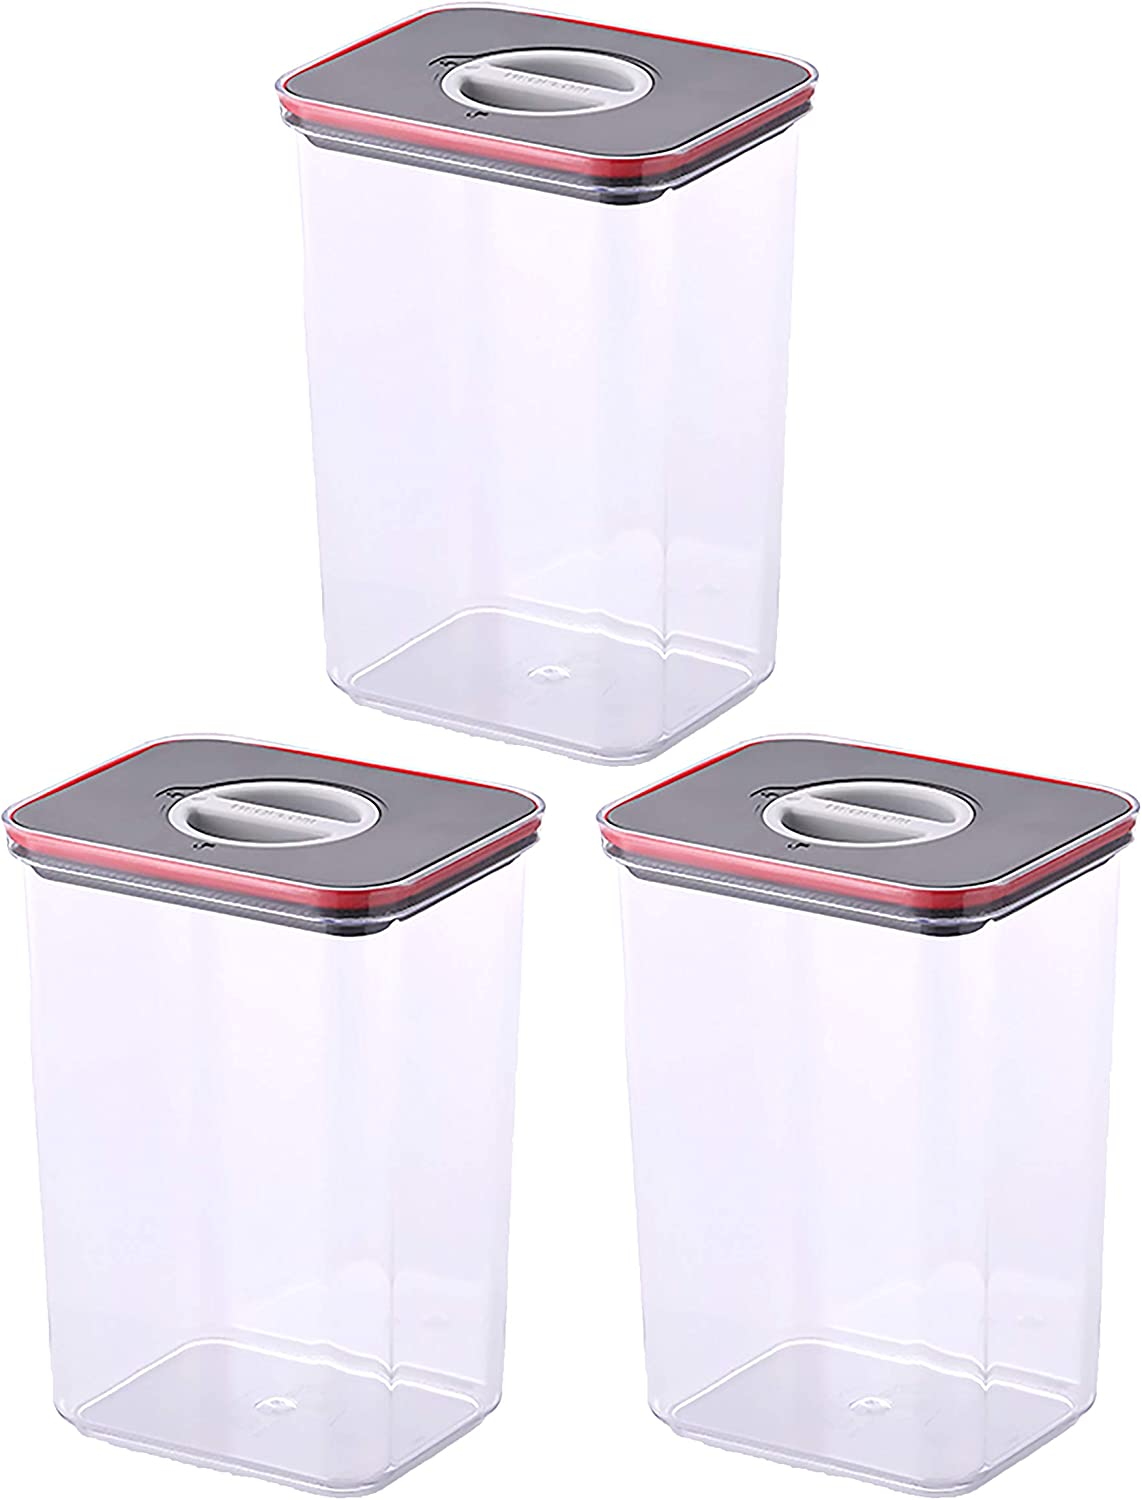 NEOFLAM Airtight Smart Seal Food Storage Container (Set of 3, Rectangle) | Crystal Clear Body | Modular, Stackable, Nestable Design | Easy to Clean, BPA Free (2.7 L, 91 oz)